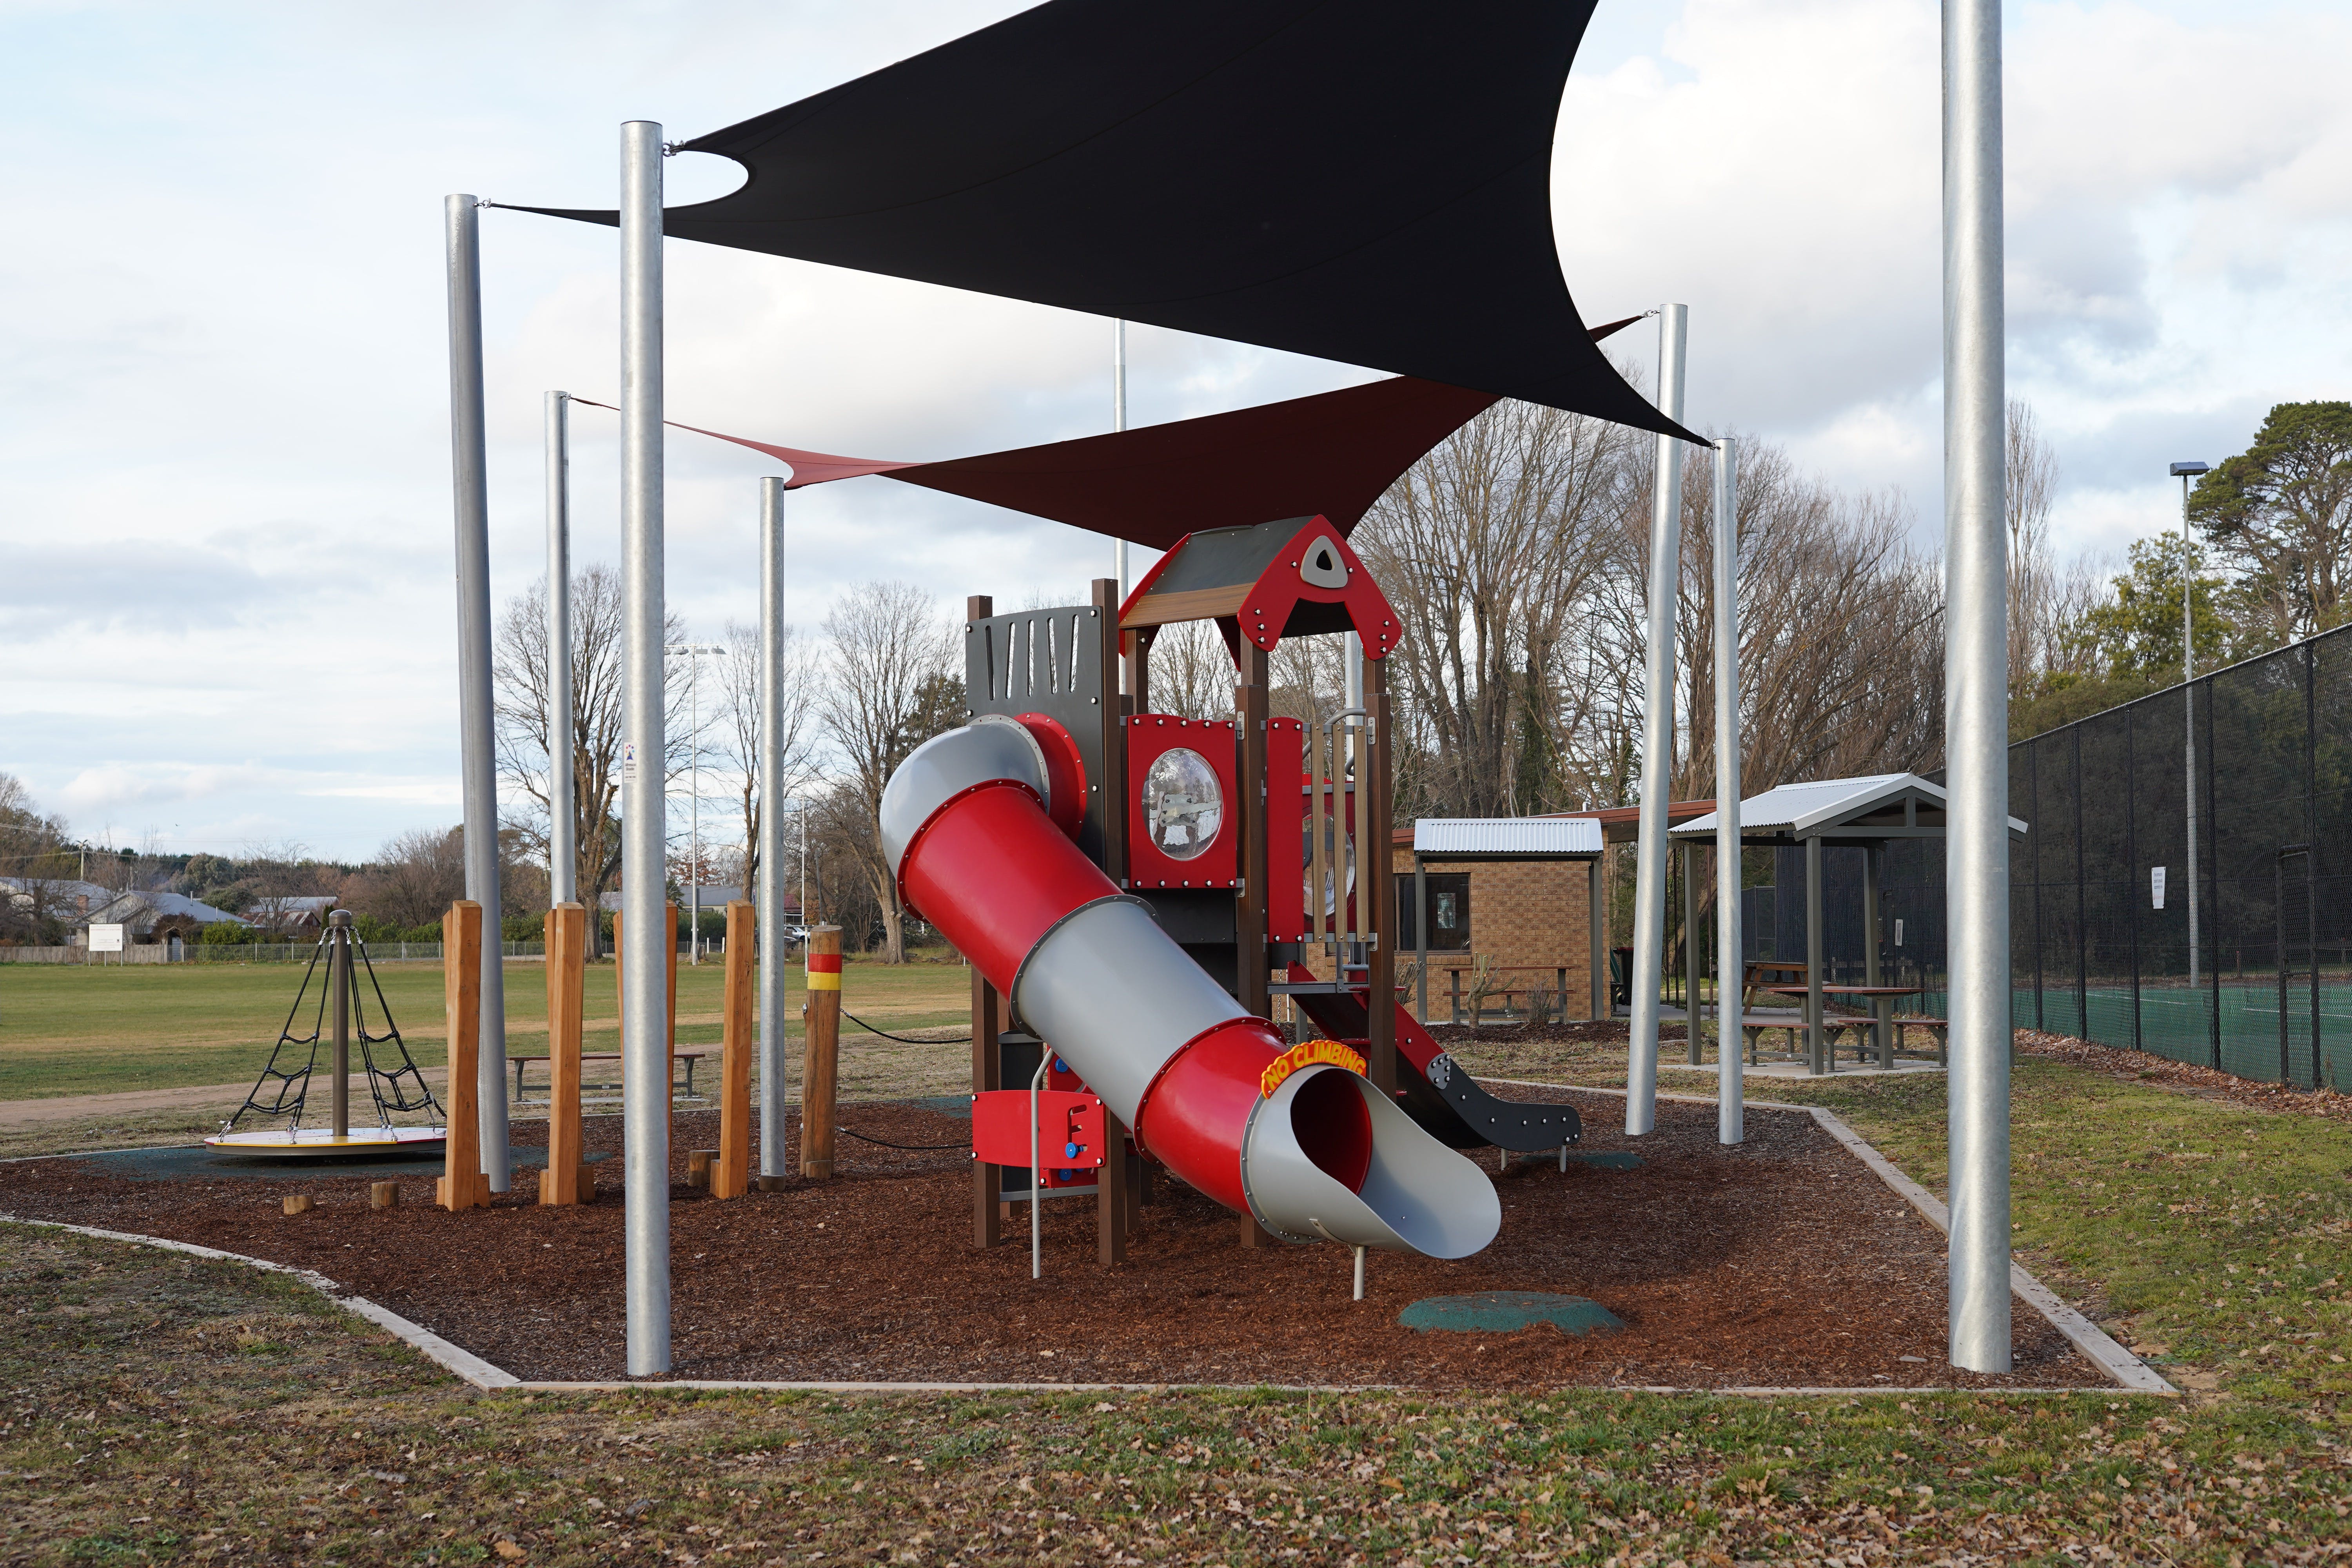 Braidwood Recreation Grounds and Playground - Tourism Gold Coast